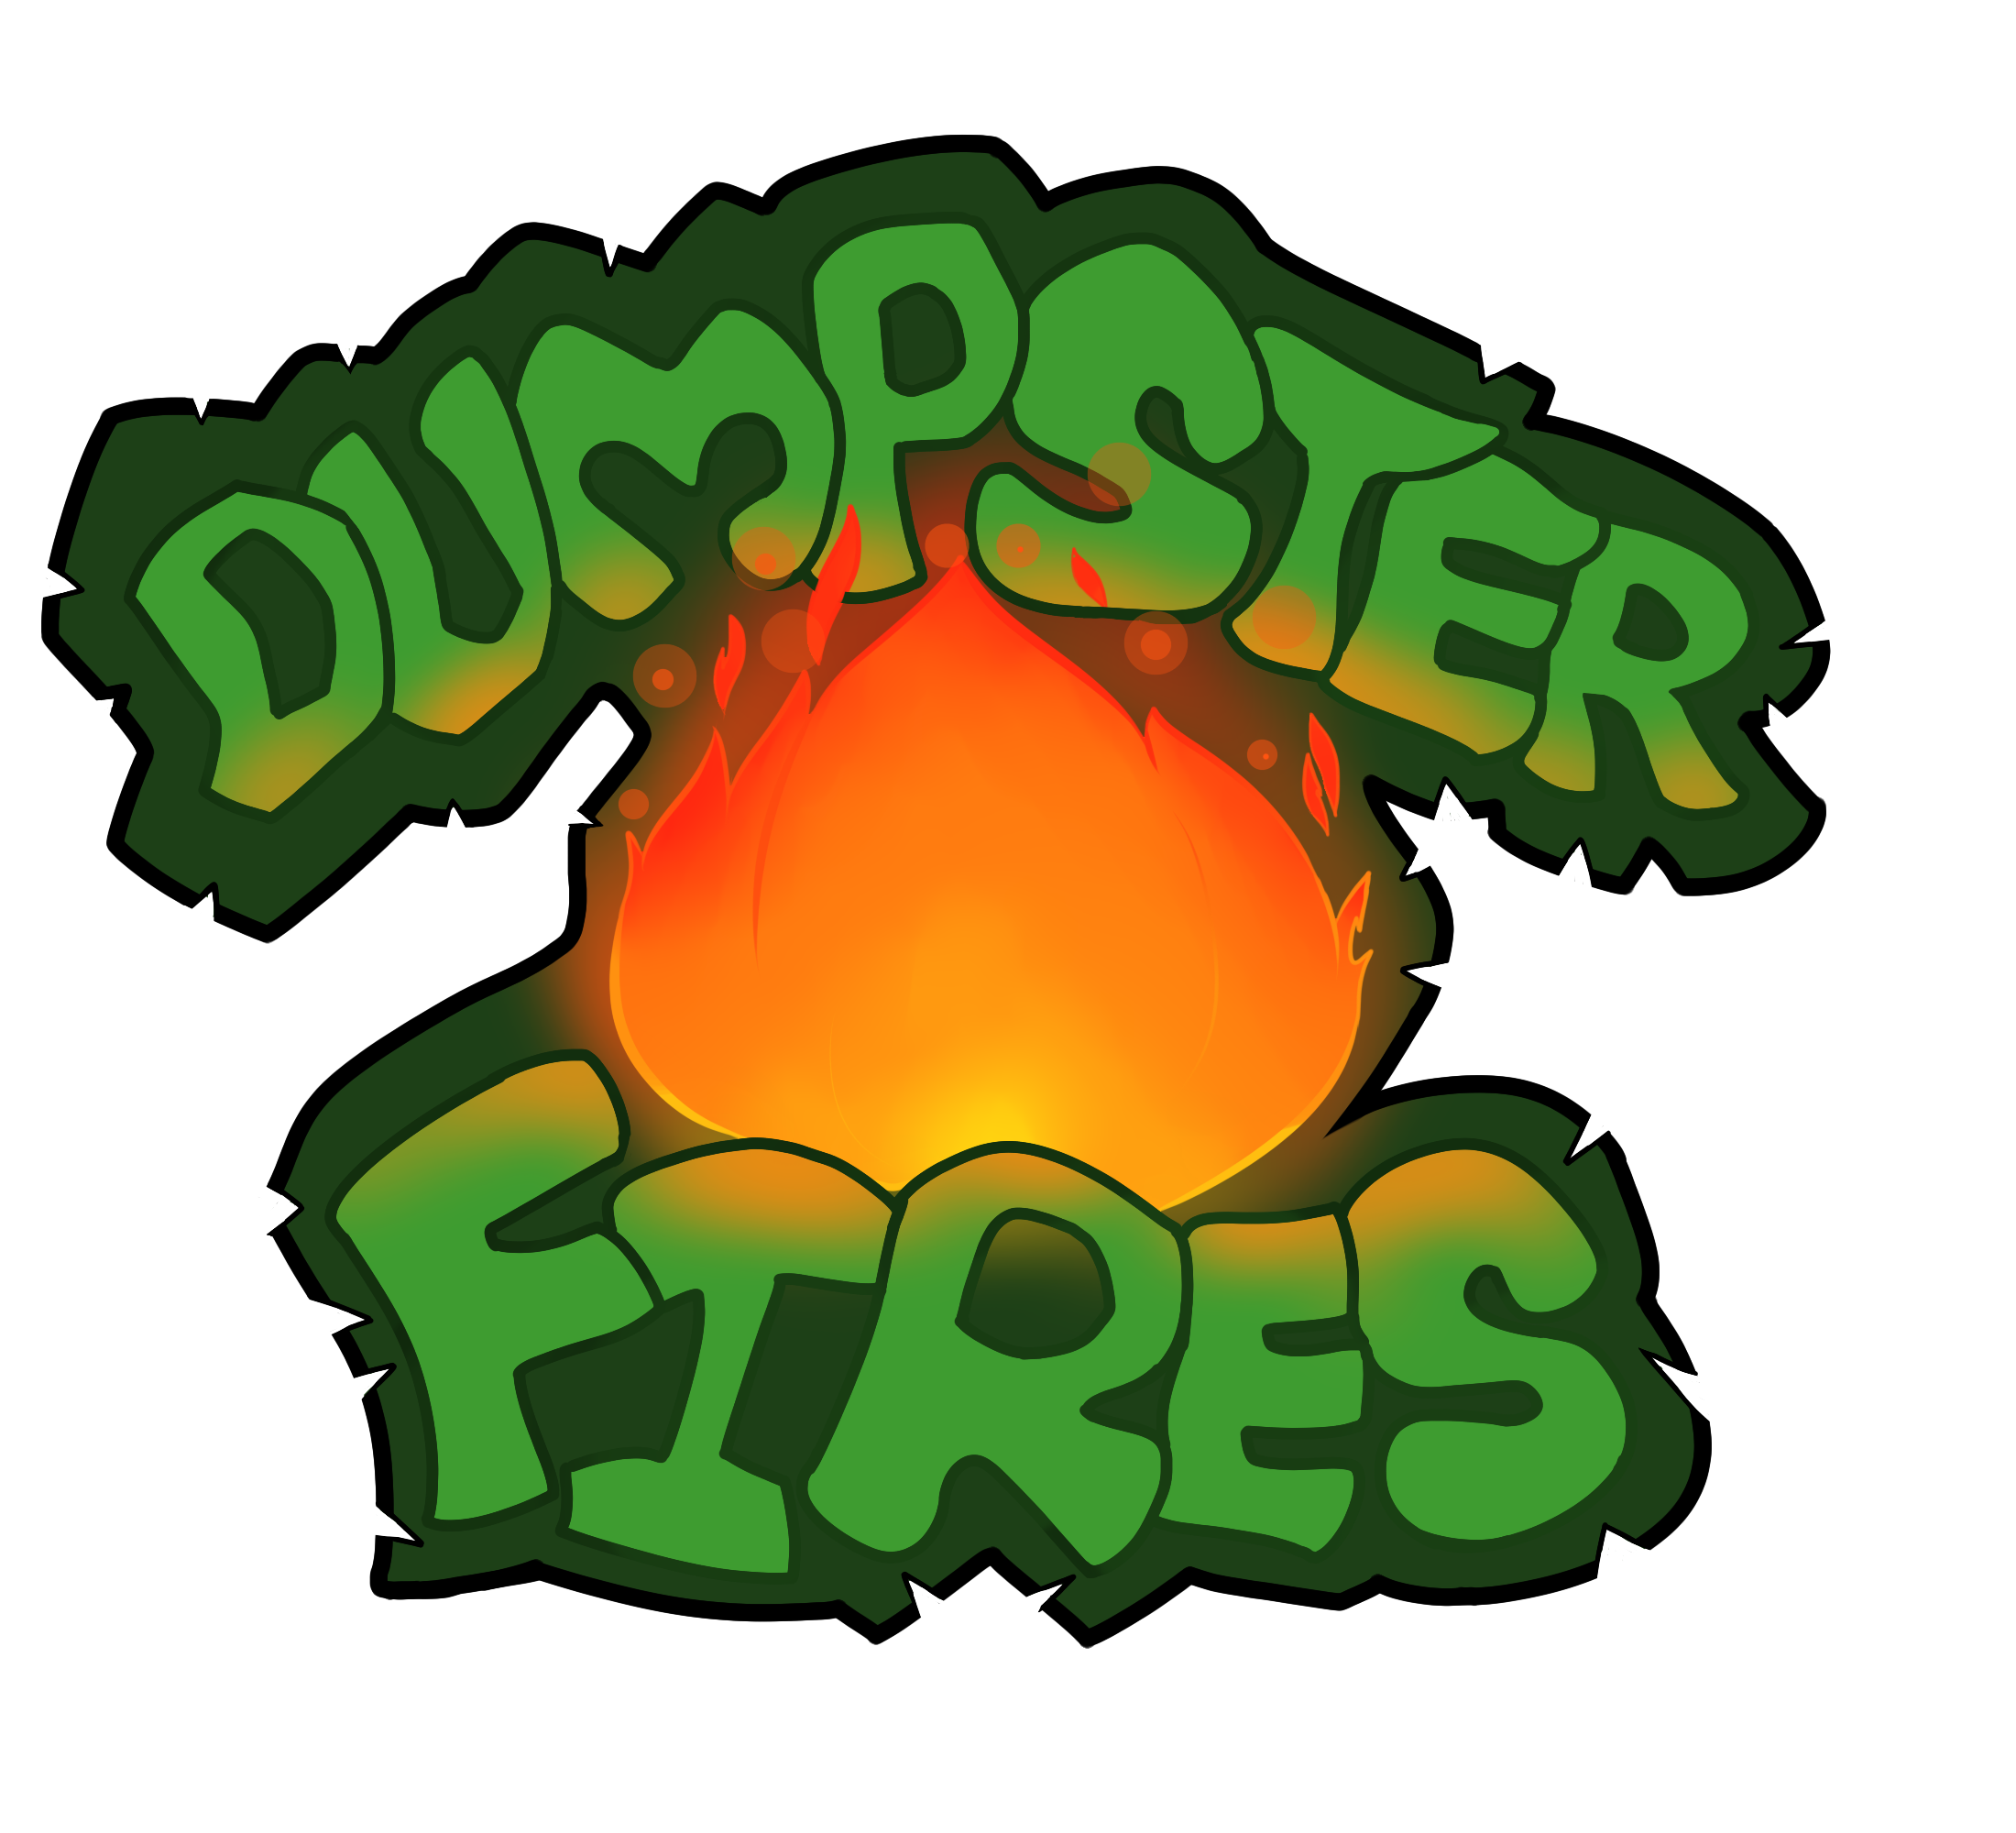 4626231_149417385751_dumpsterfires.png